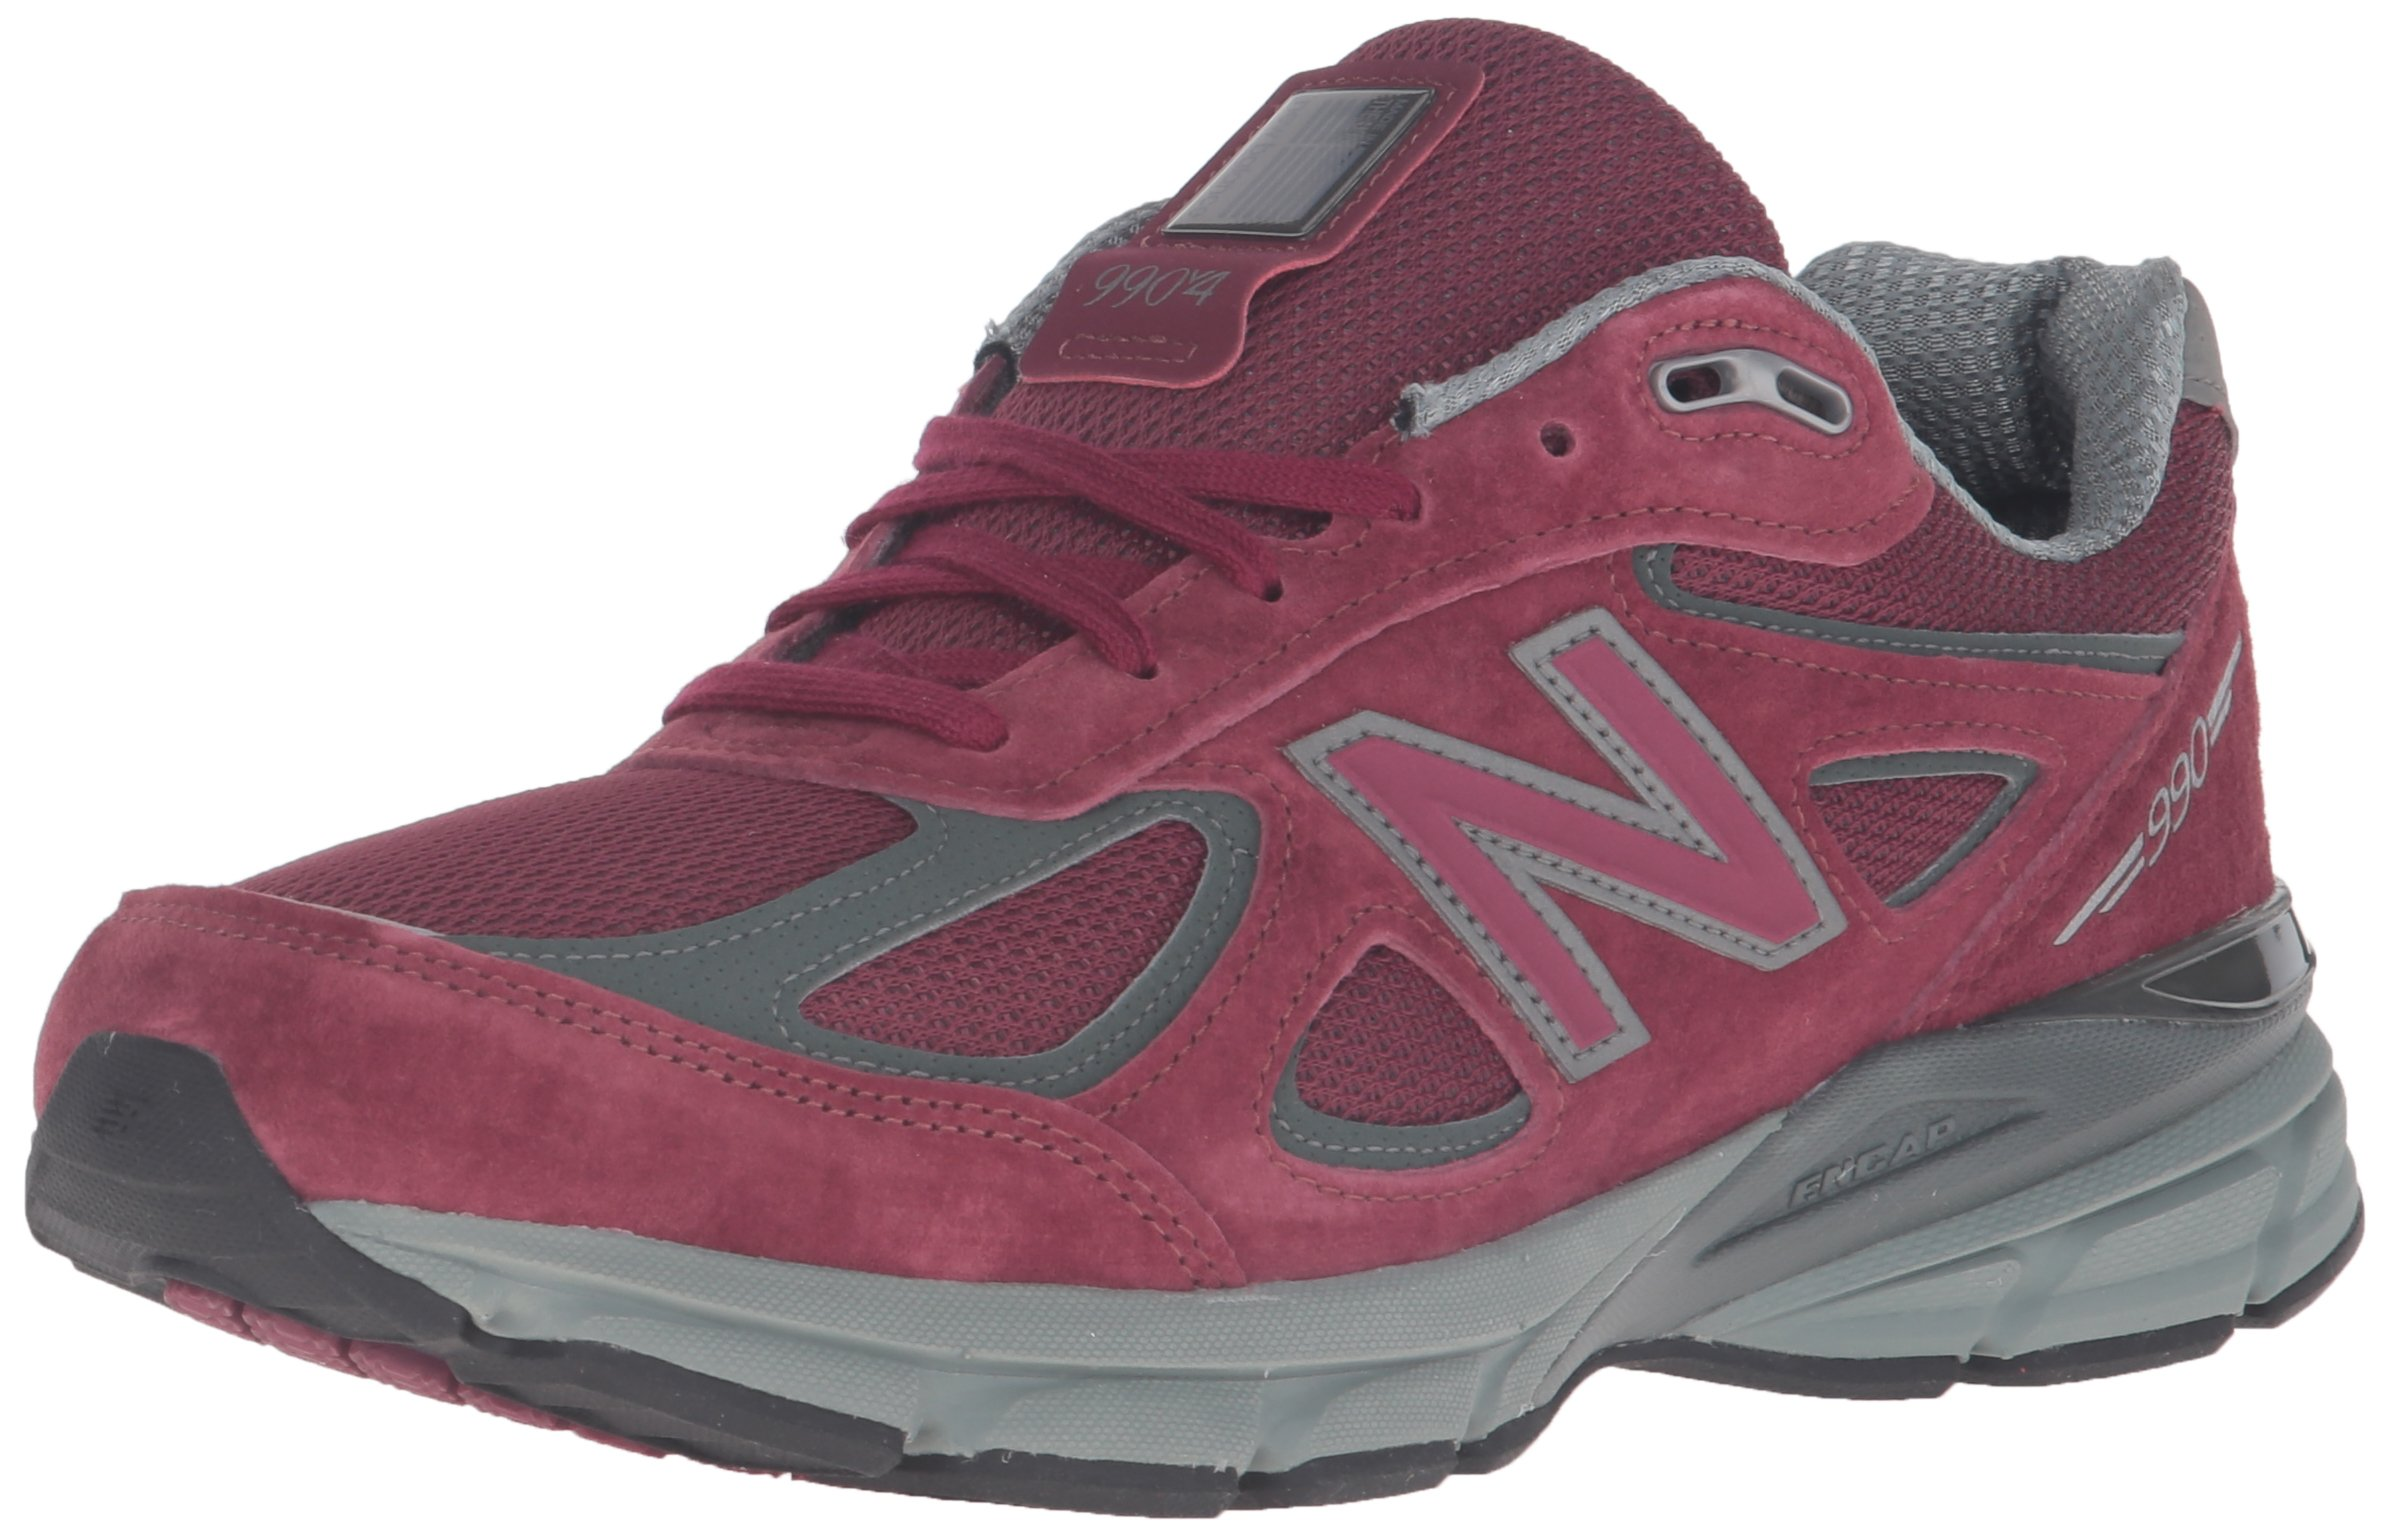 New Balance Men's M990BU4 Running Shoe,Burgundy,10 D US by New Balance